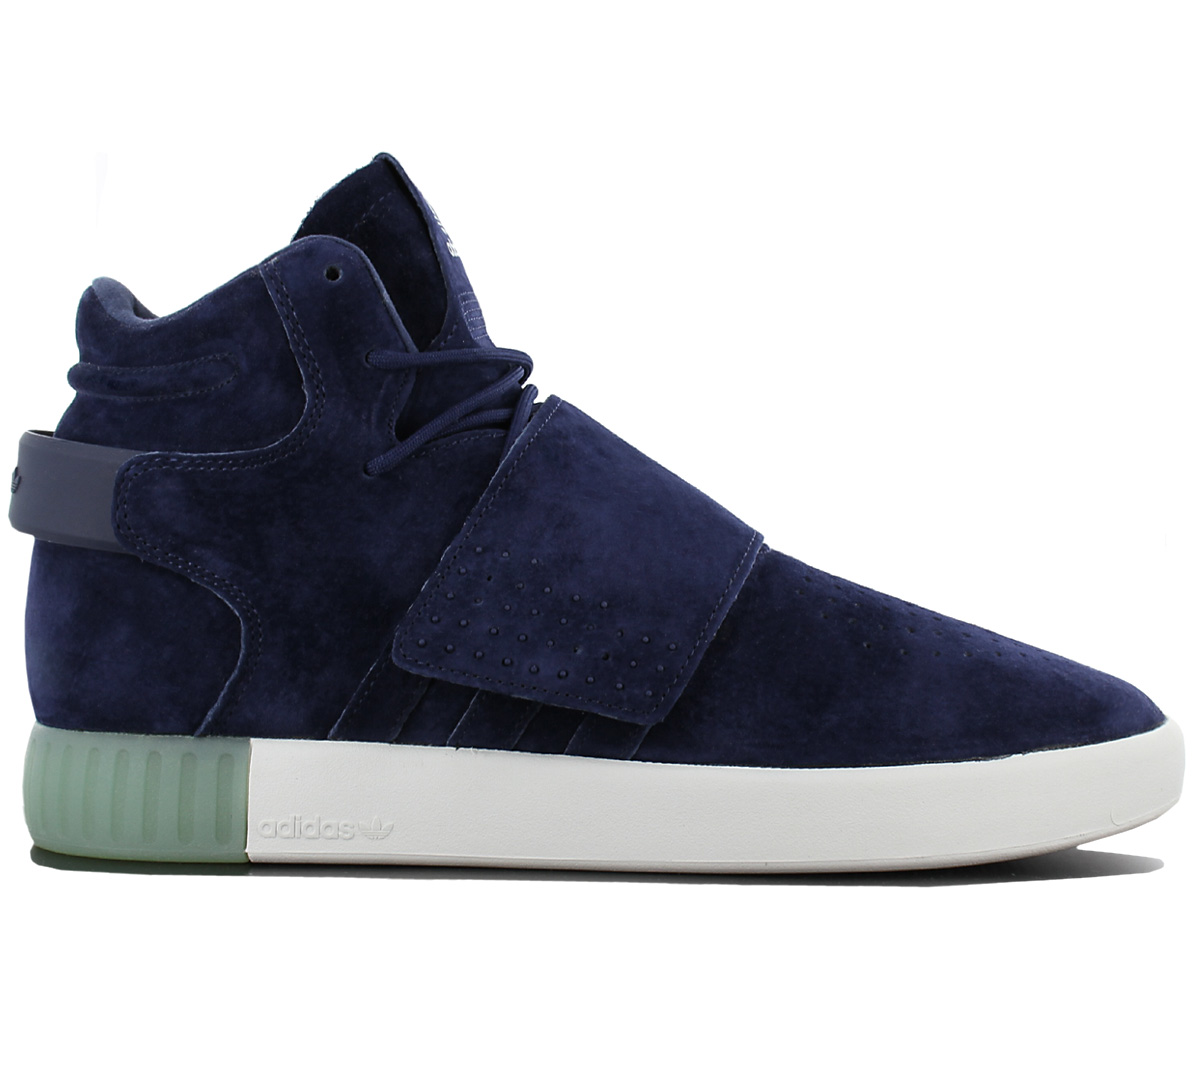 Adidas Originals Tubular Invader Strap Leather Blue Men s Shoes ... aed48bce3